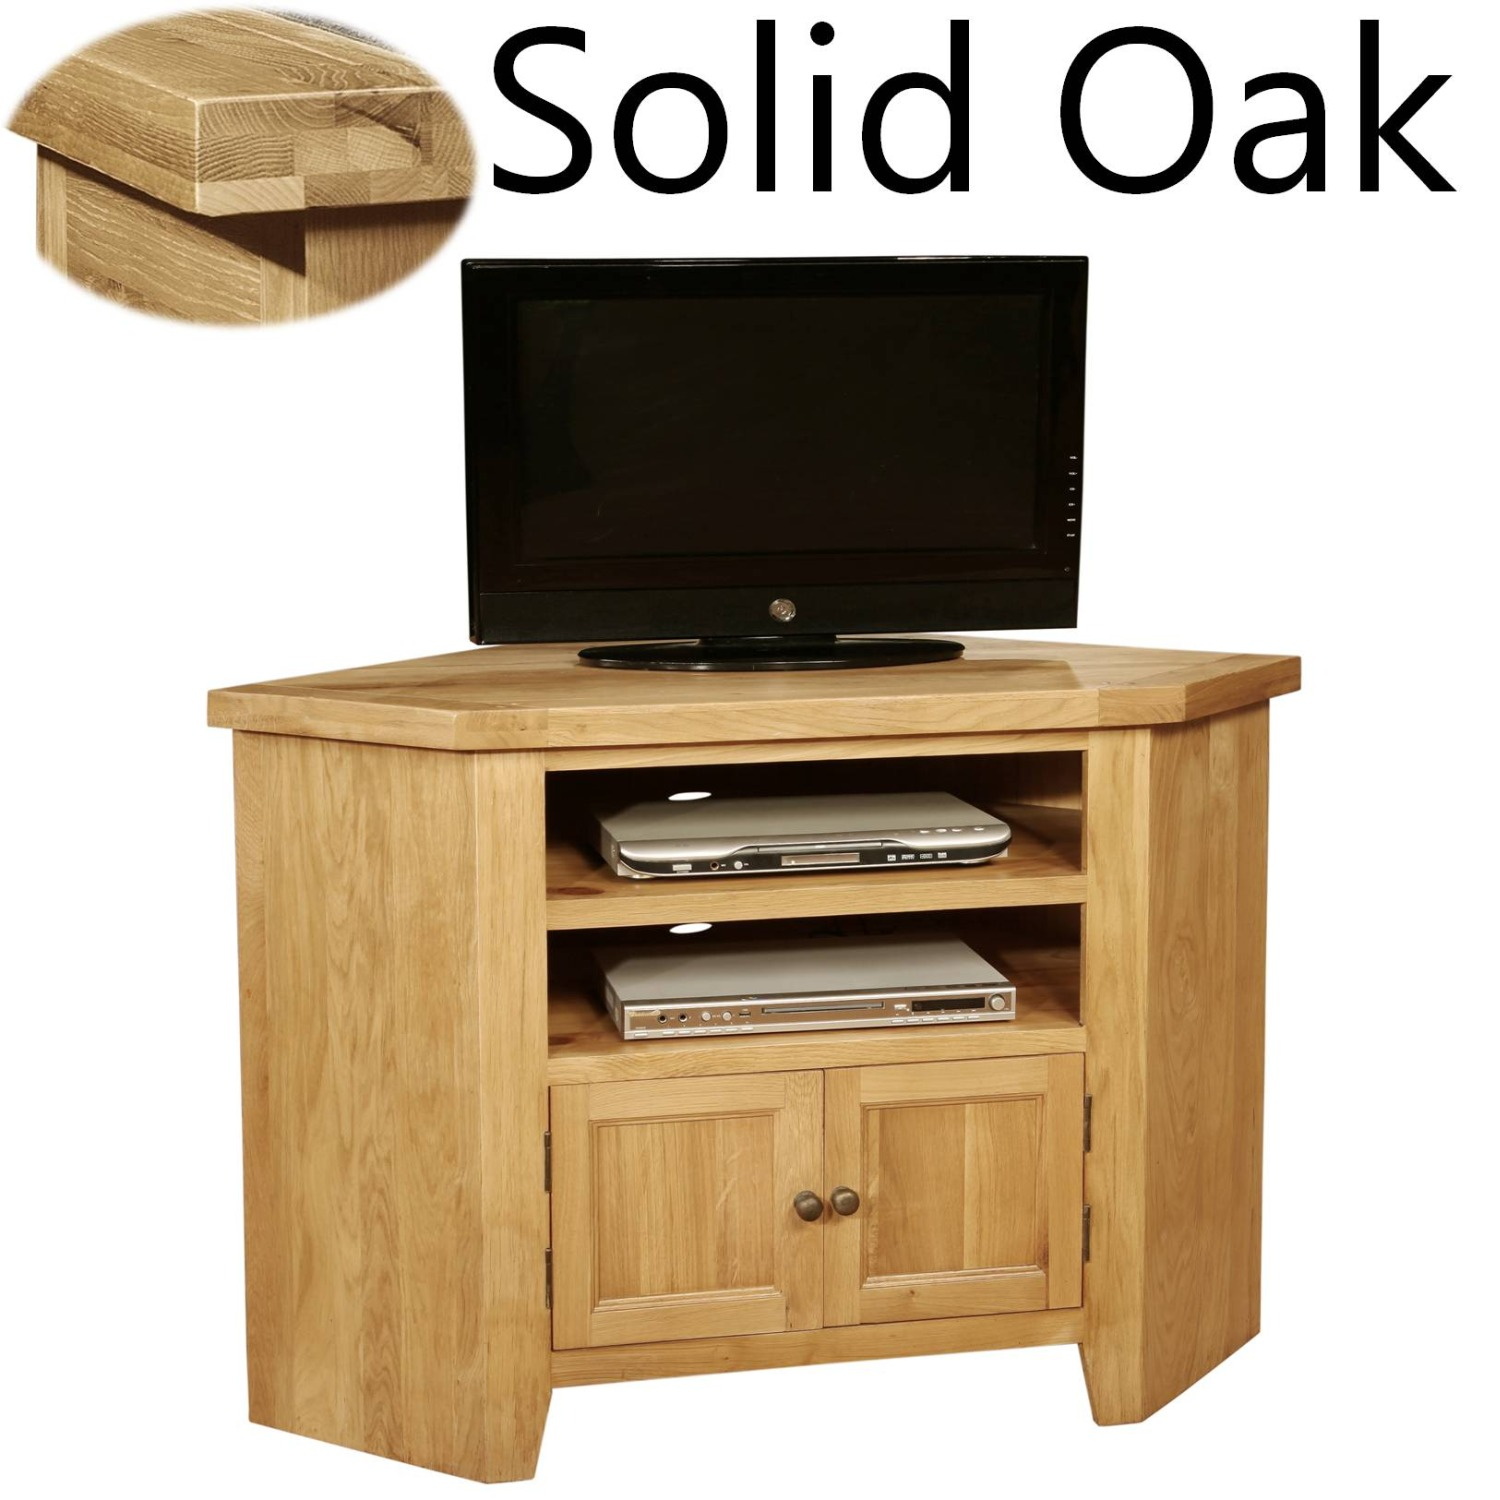 panama solid oak furniture living room corner television cabinet stand unit ebay. Black Bedroom Furniture Sets. Home Design Ideas